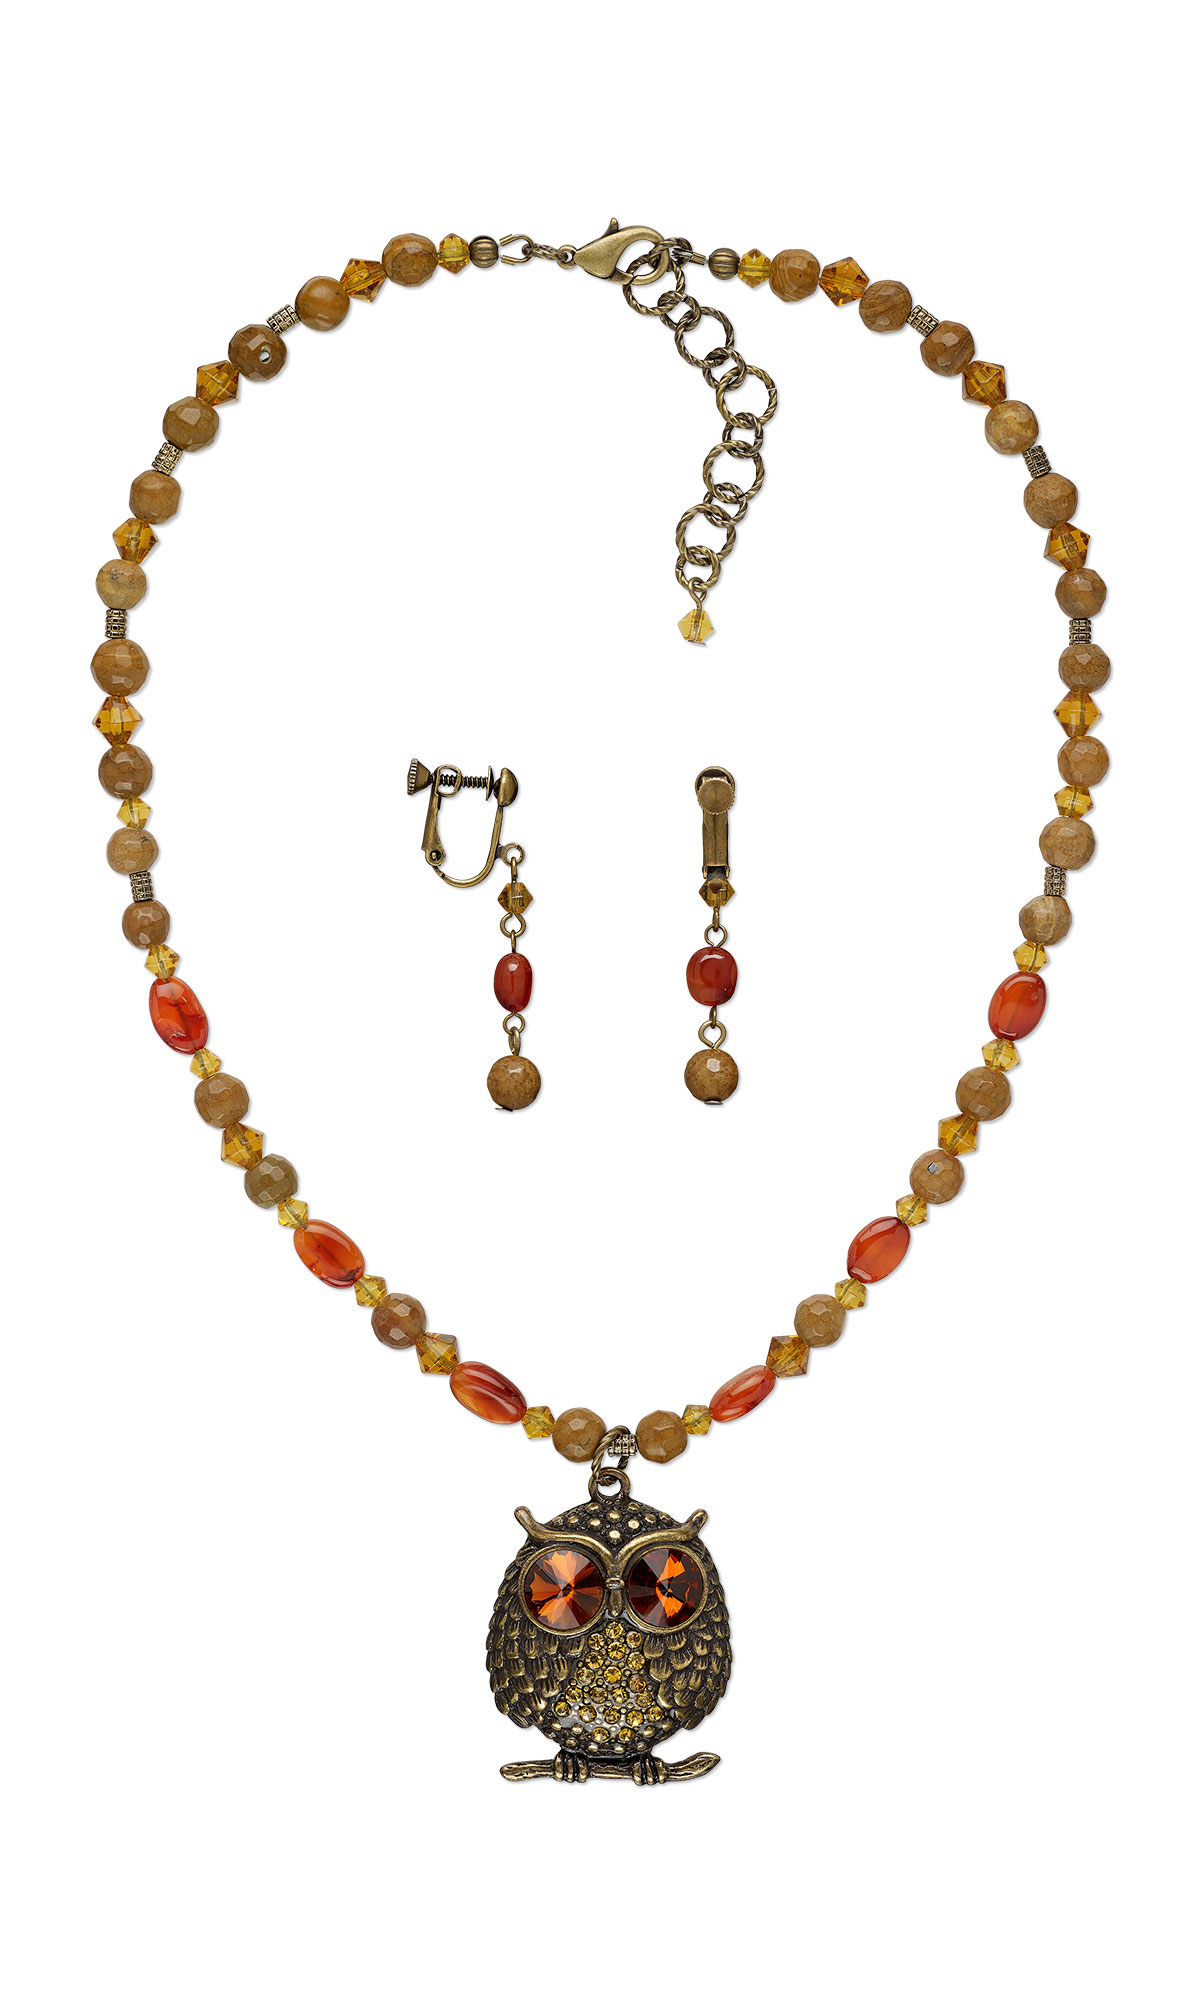 General Info. Based in Grants Pass, Ore., Fire Mountain Gems and Beads has been operational for more than 30 years and is a provider of beading and jewelry .